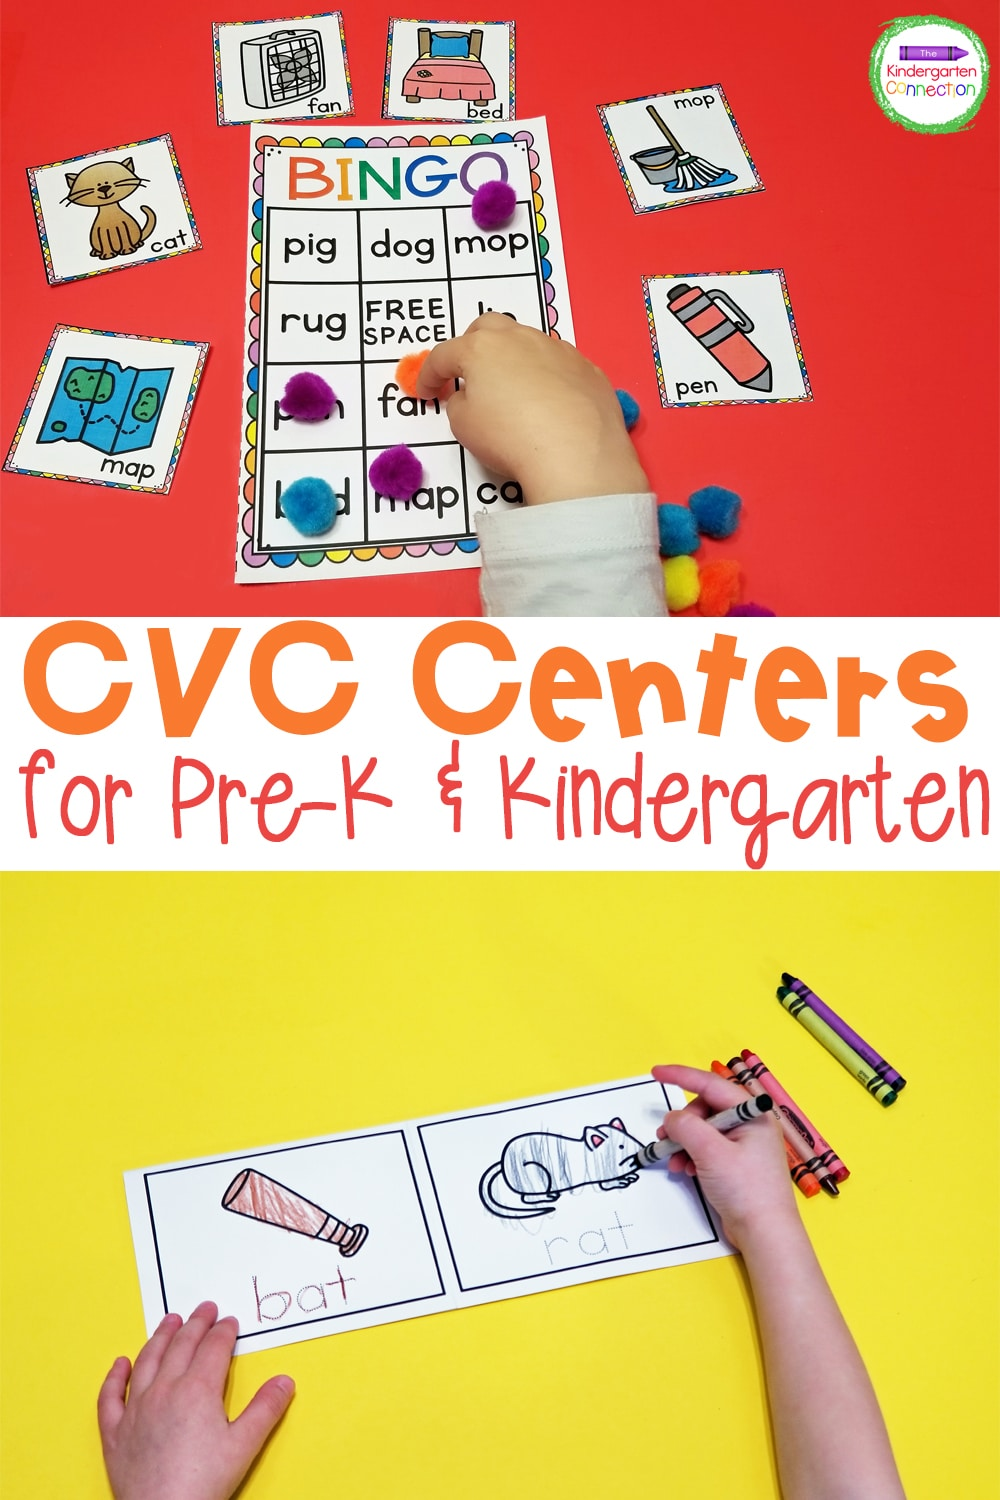 These CVC Word Activities and Centers for Pre-K & Kindergarten are a great way to practice a variety of CVC word families with your students!